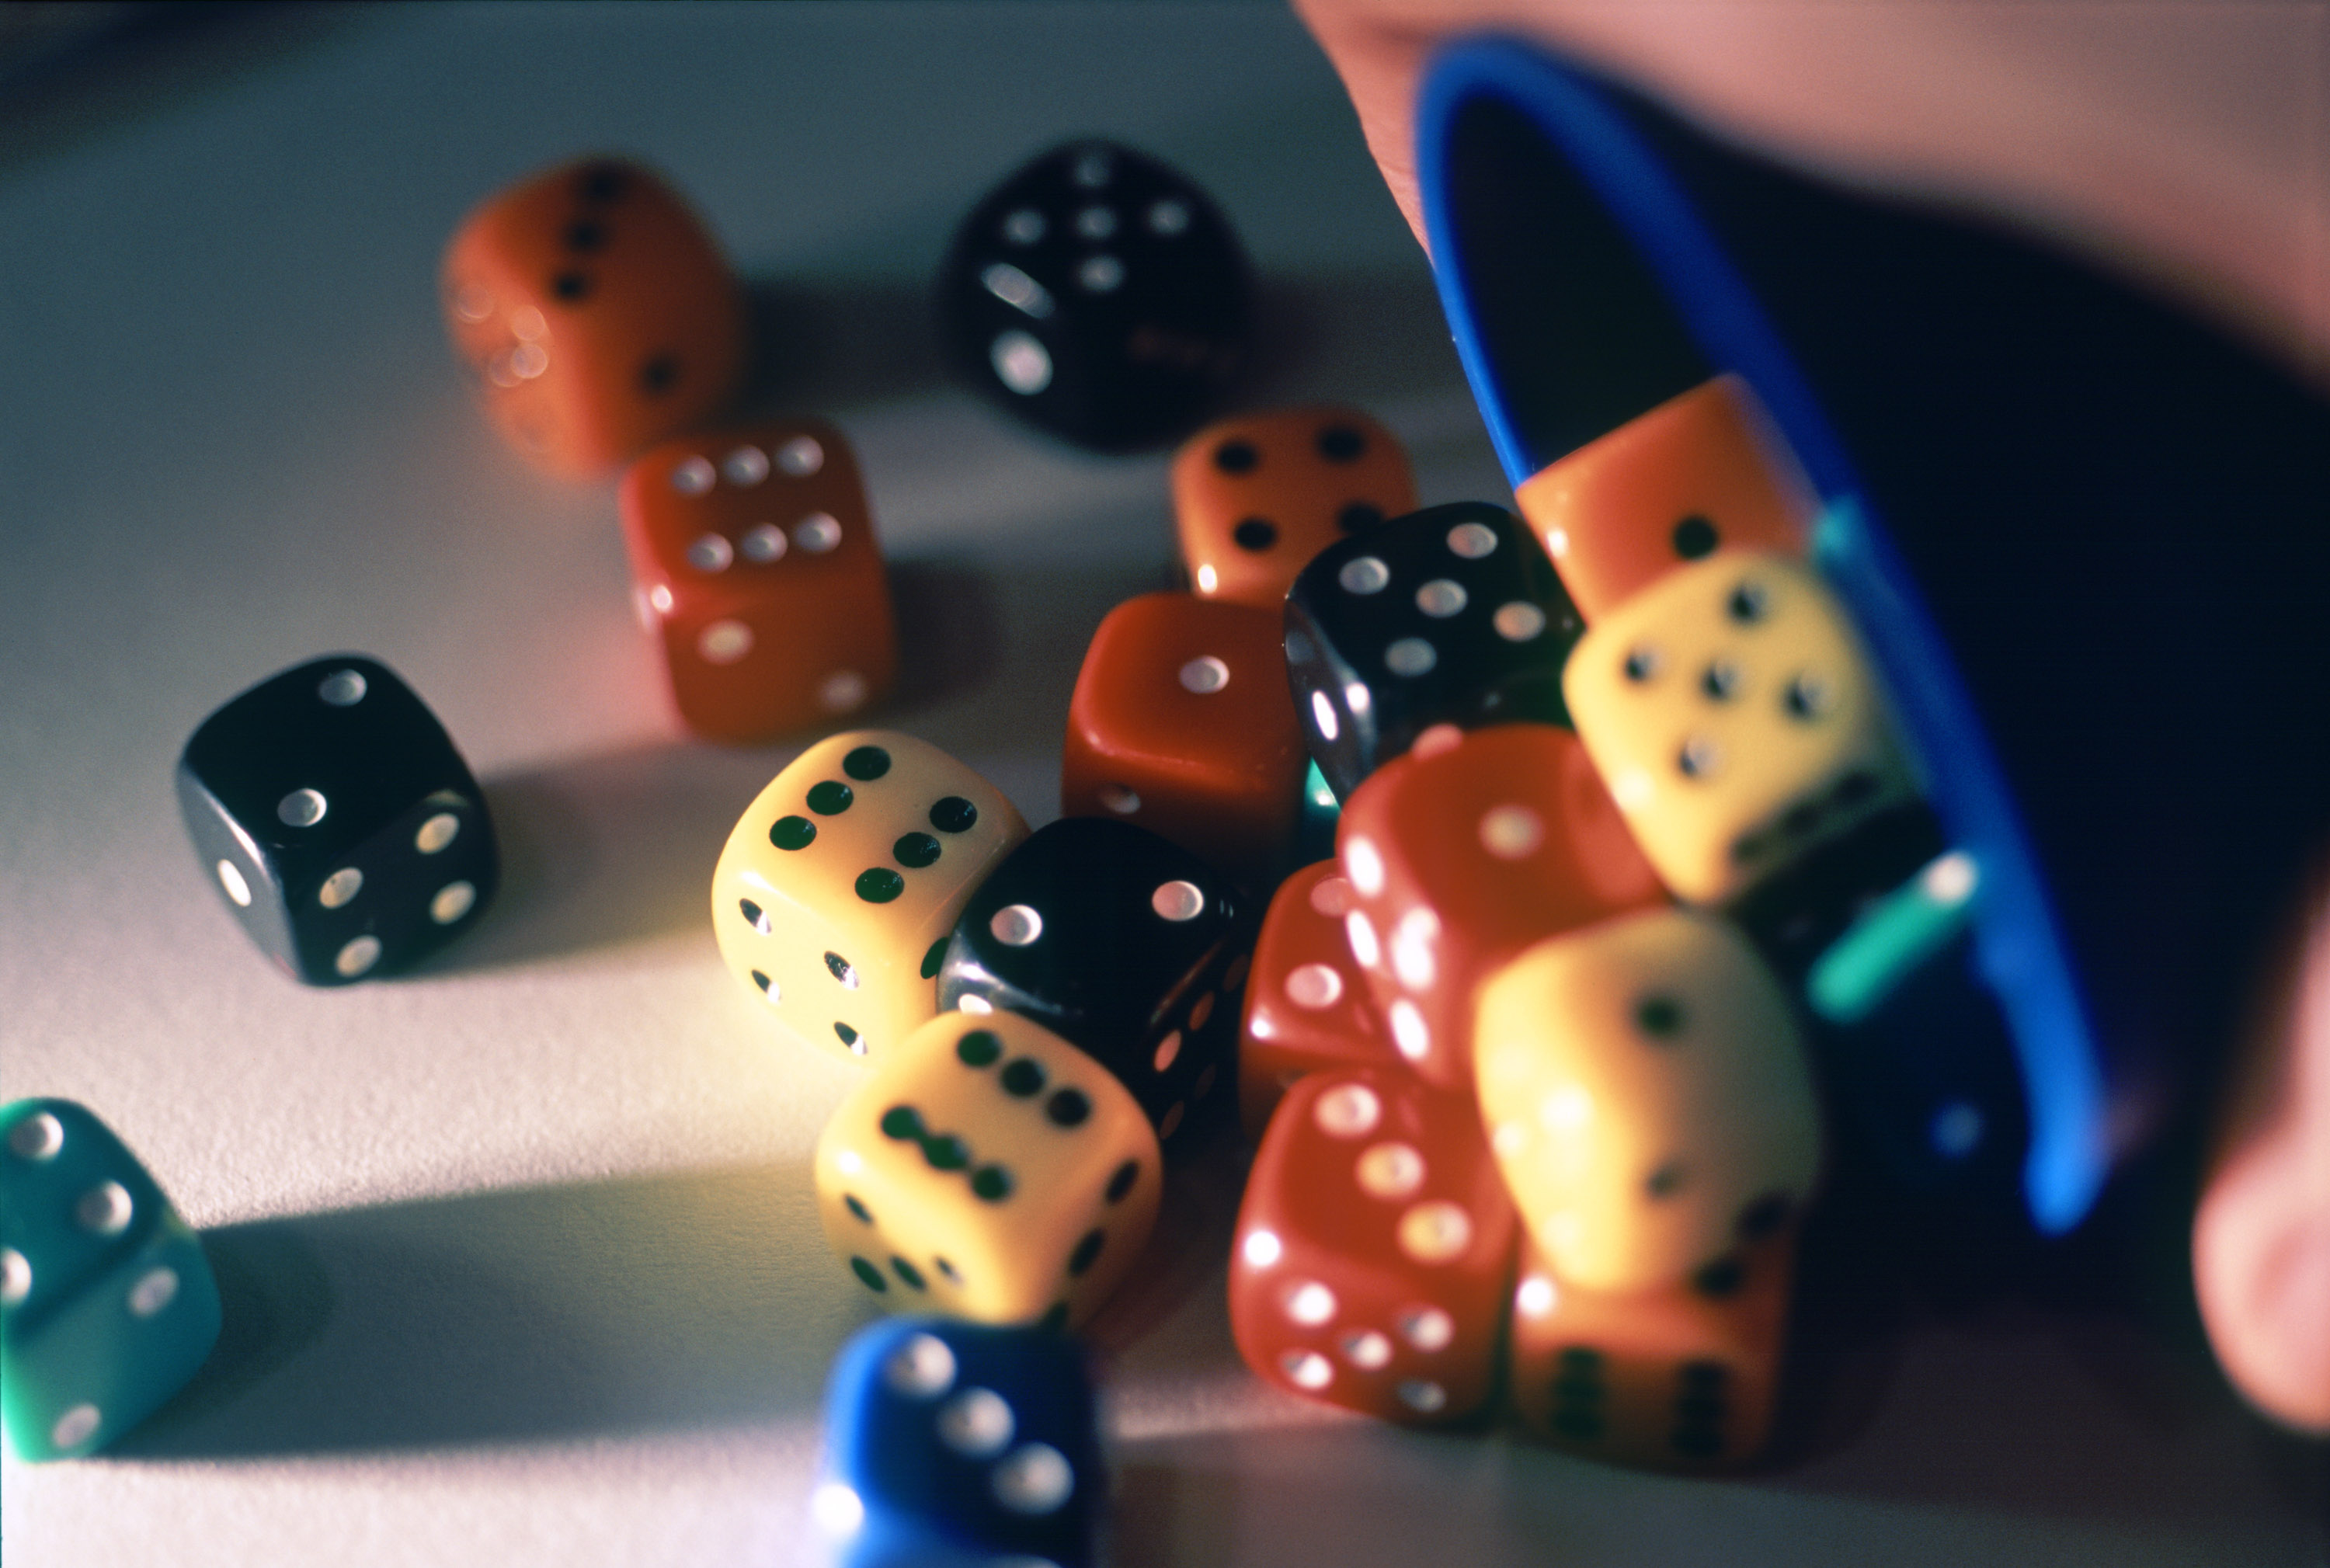 a cup full of dice, concept: board games at christmas